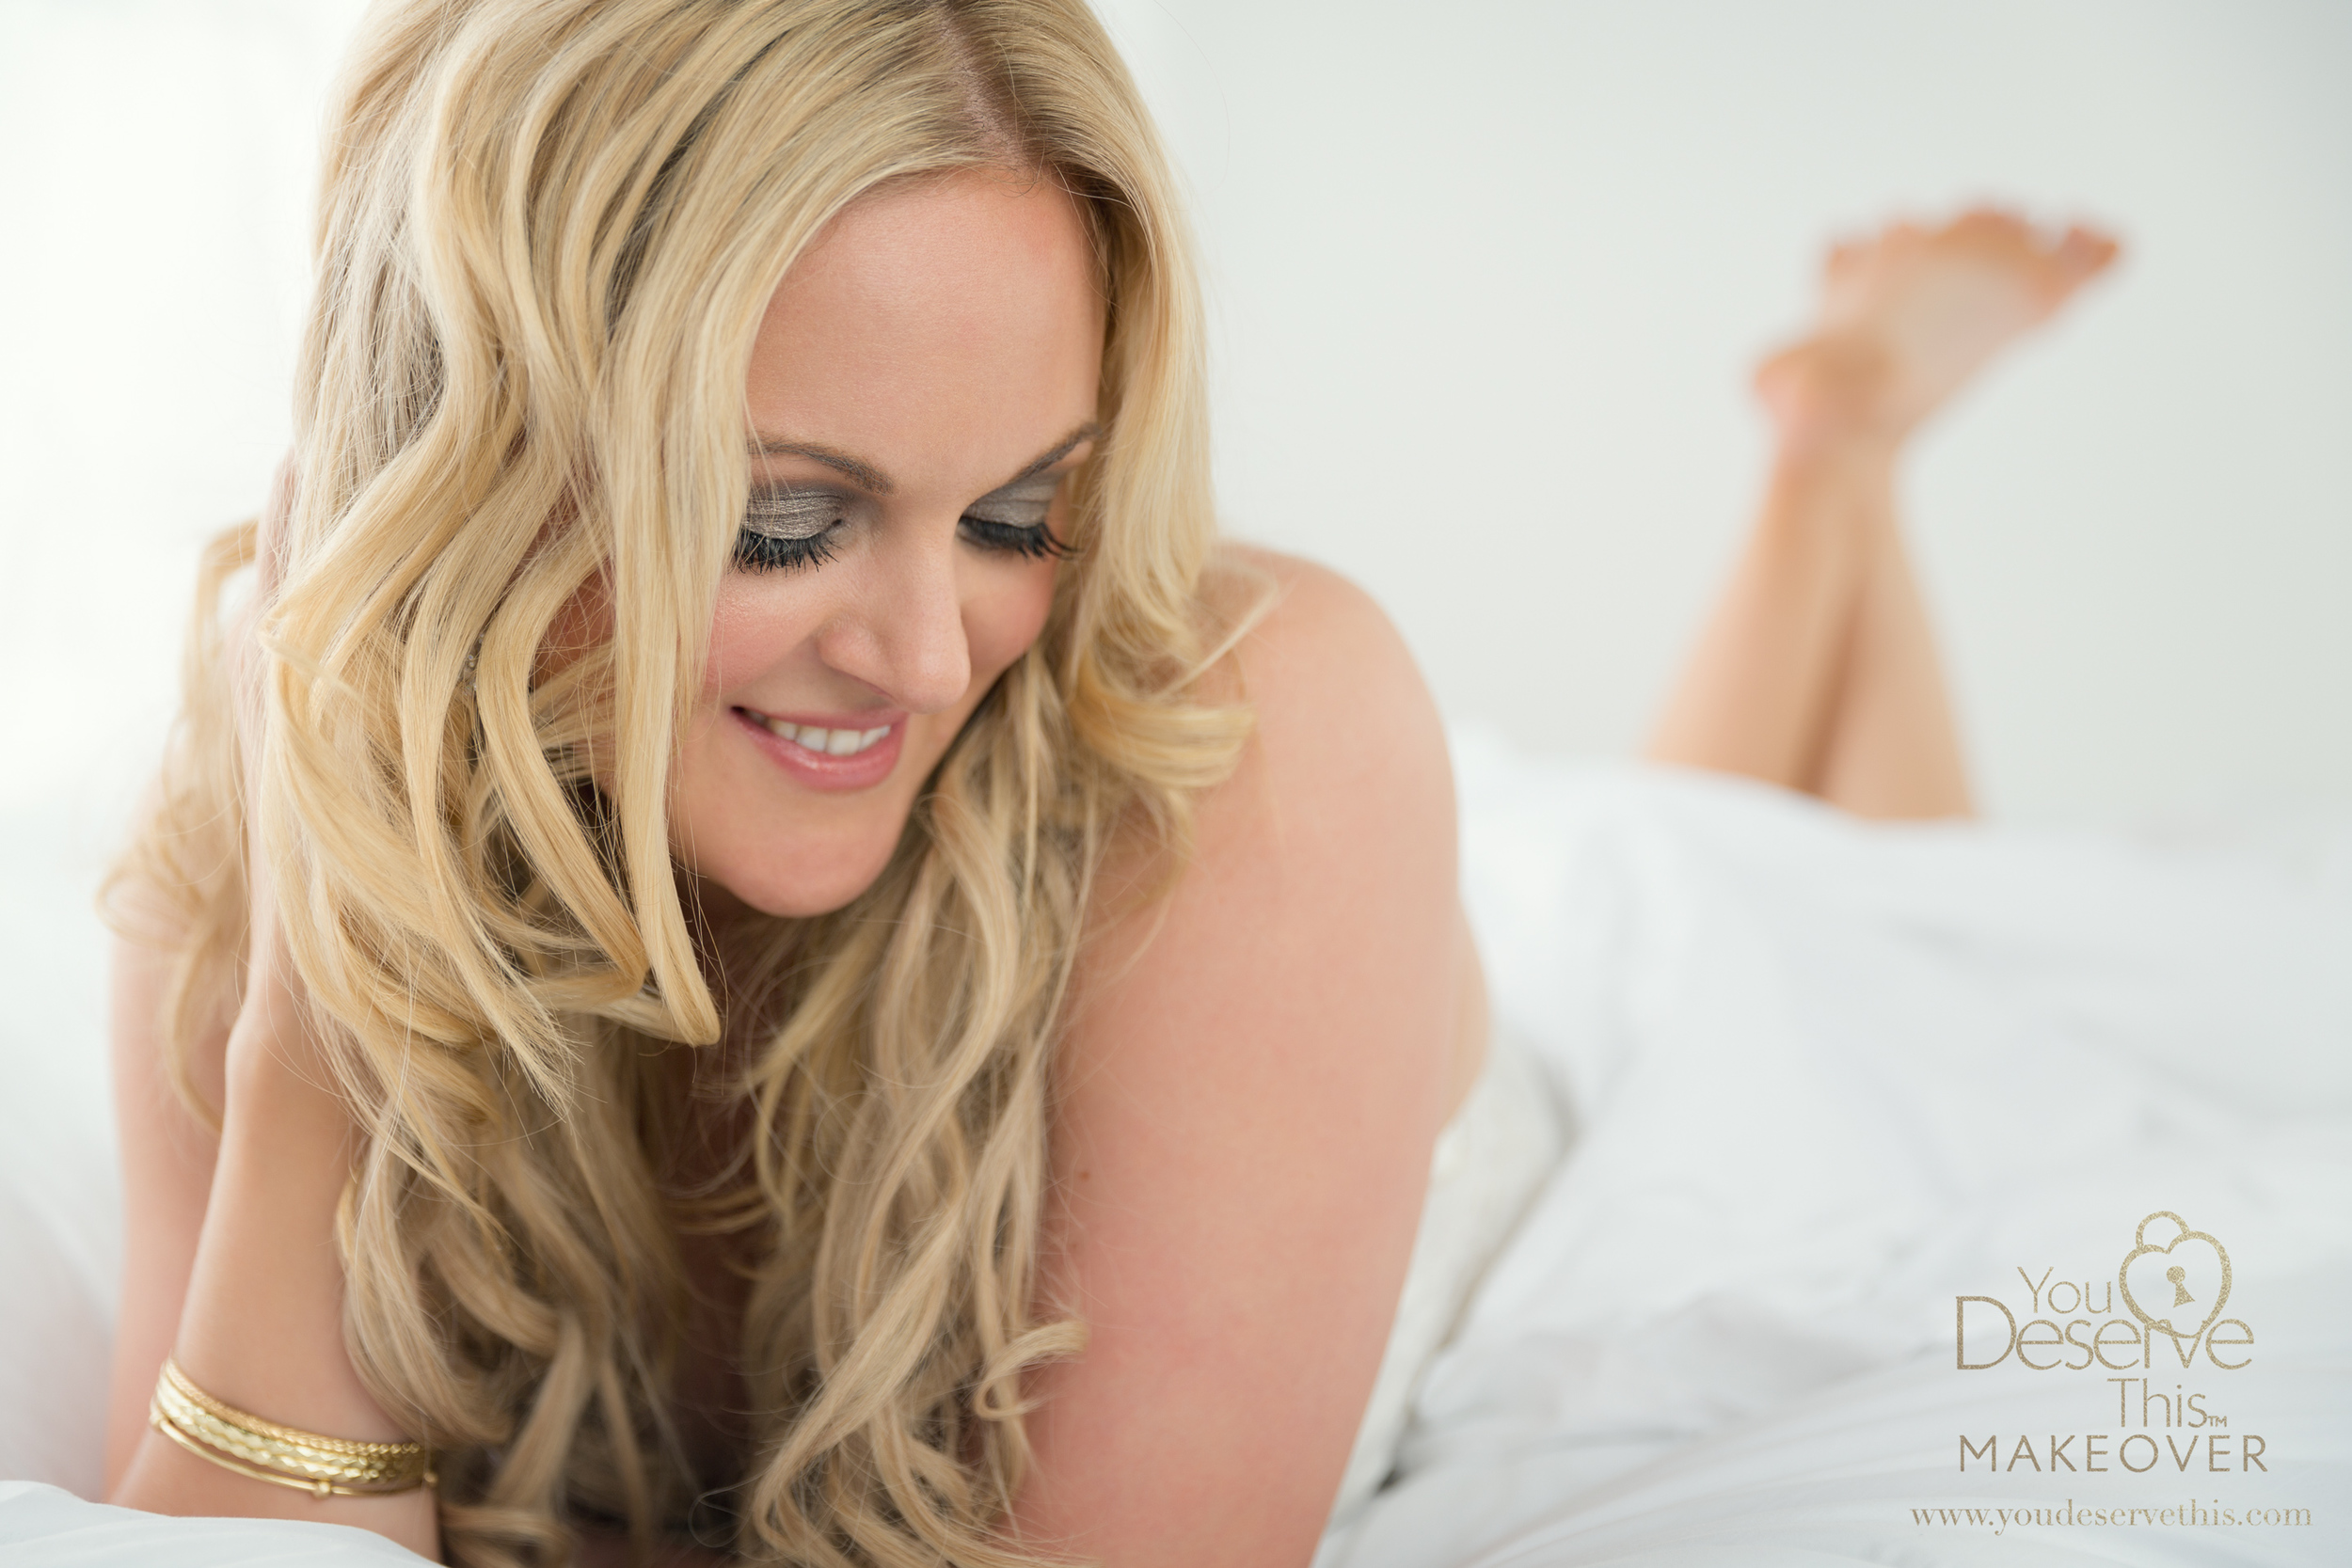 Bright and sensual contemporary glamour portraits  for all women.  www.youdeservethis.com